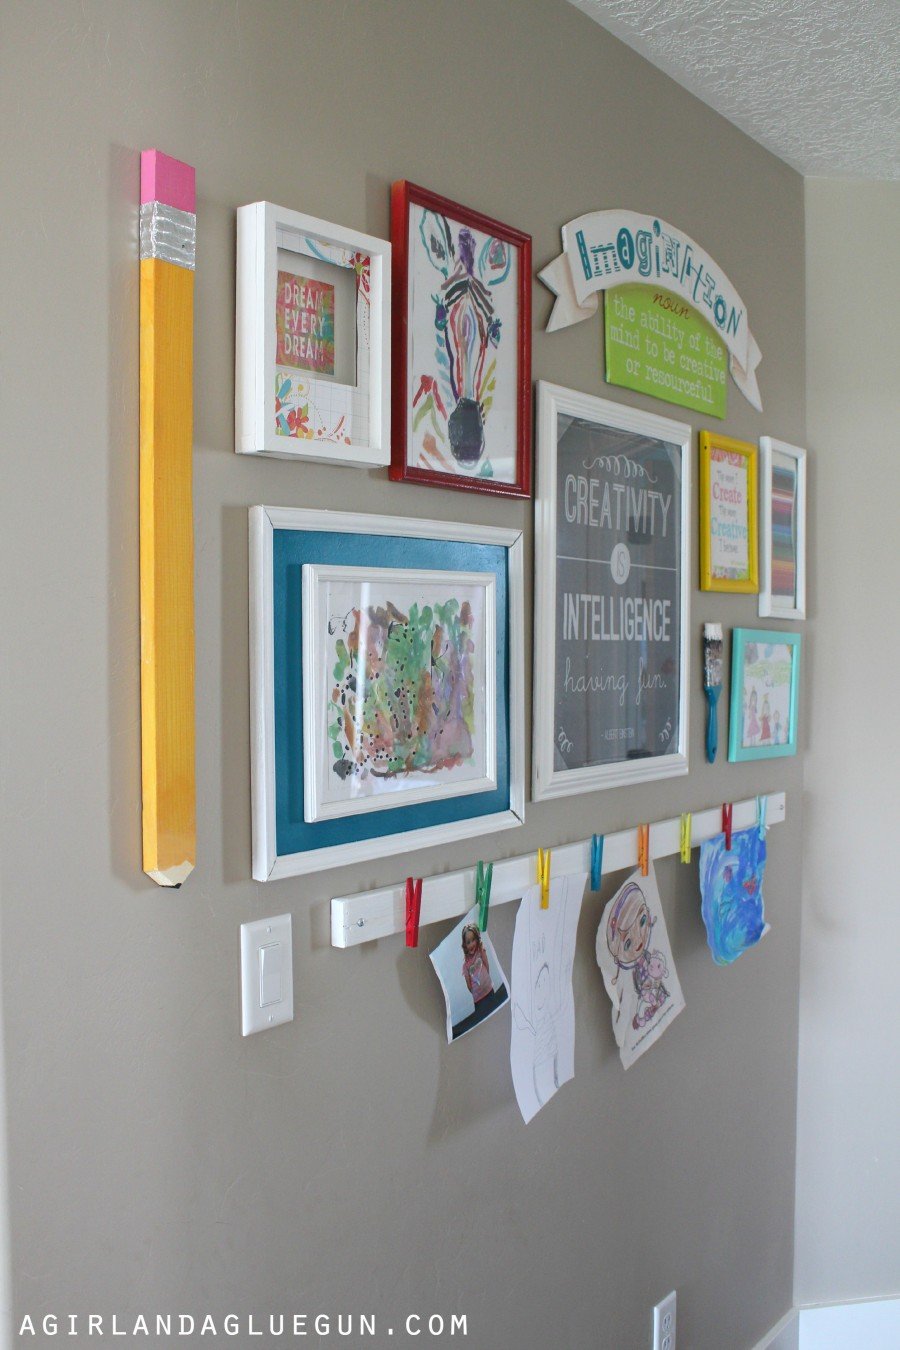 A board with pegs attached is an easy and effective way to display artwork in a child's bedroom